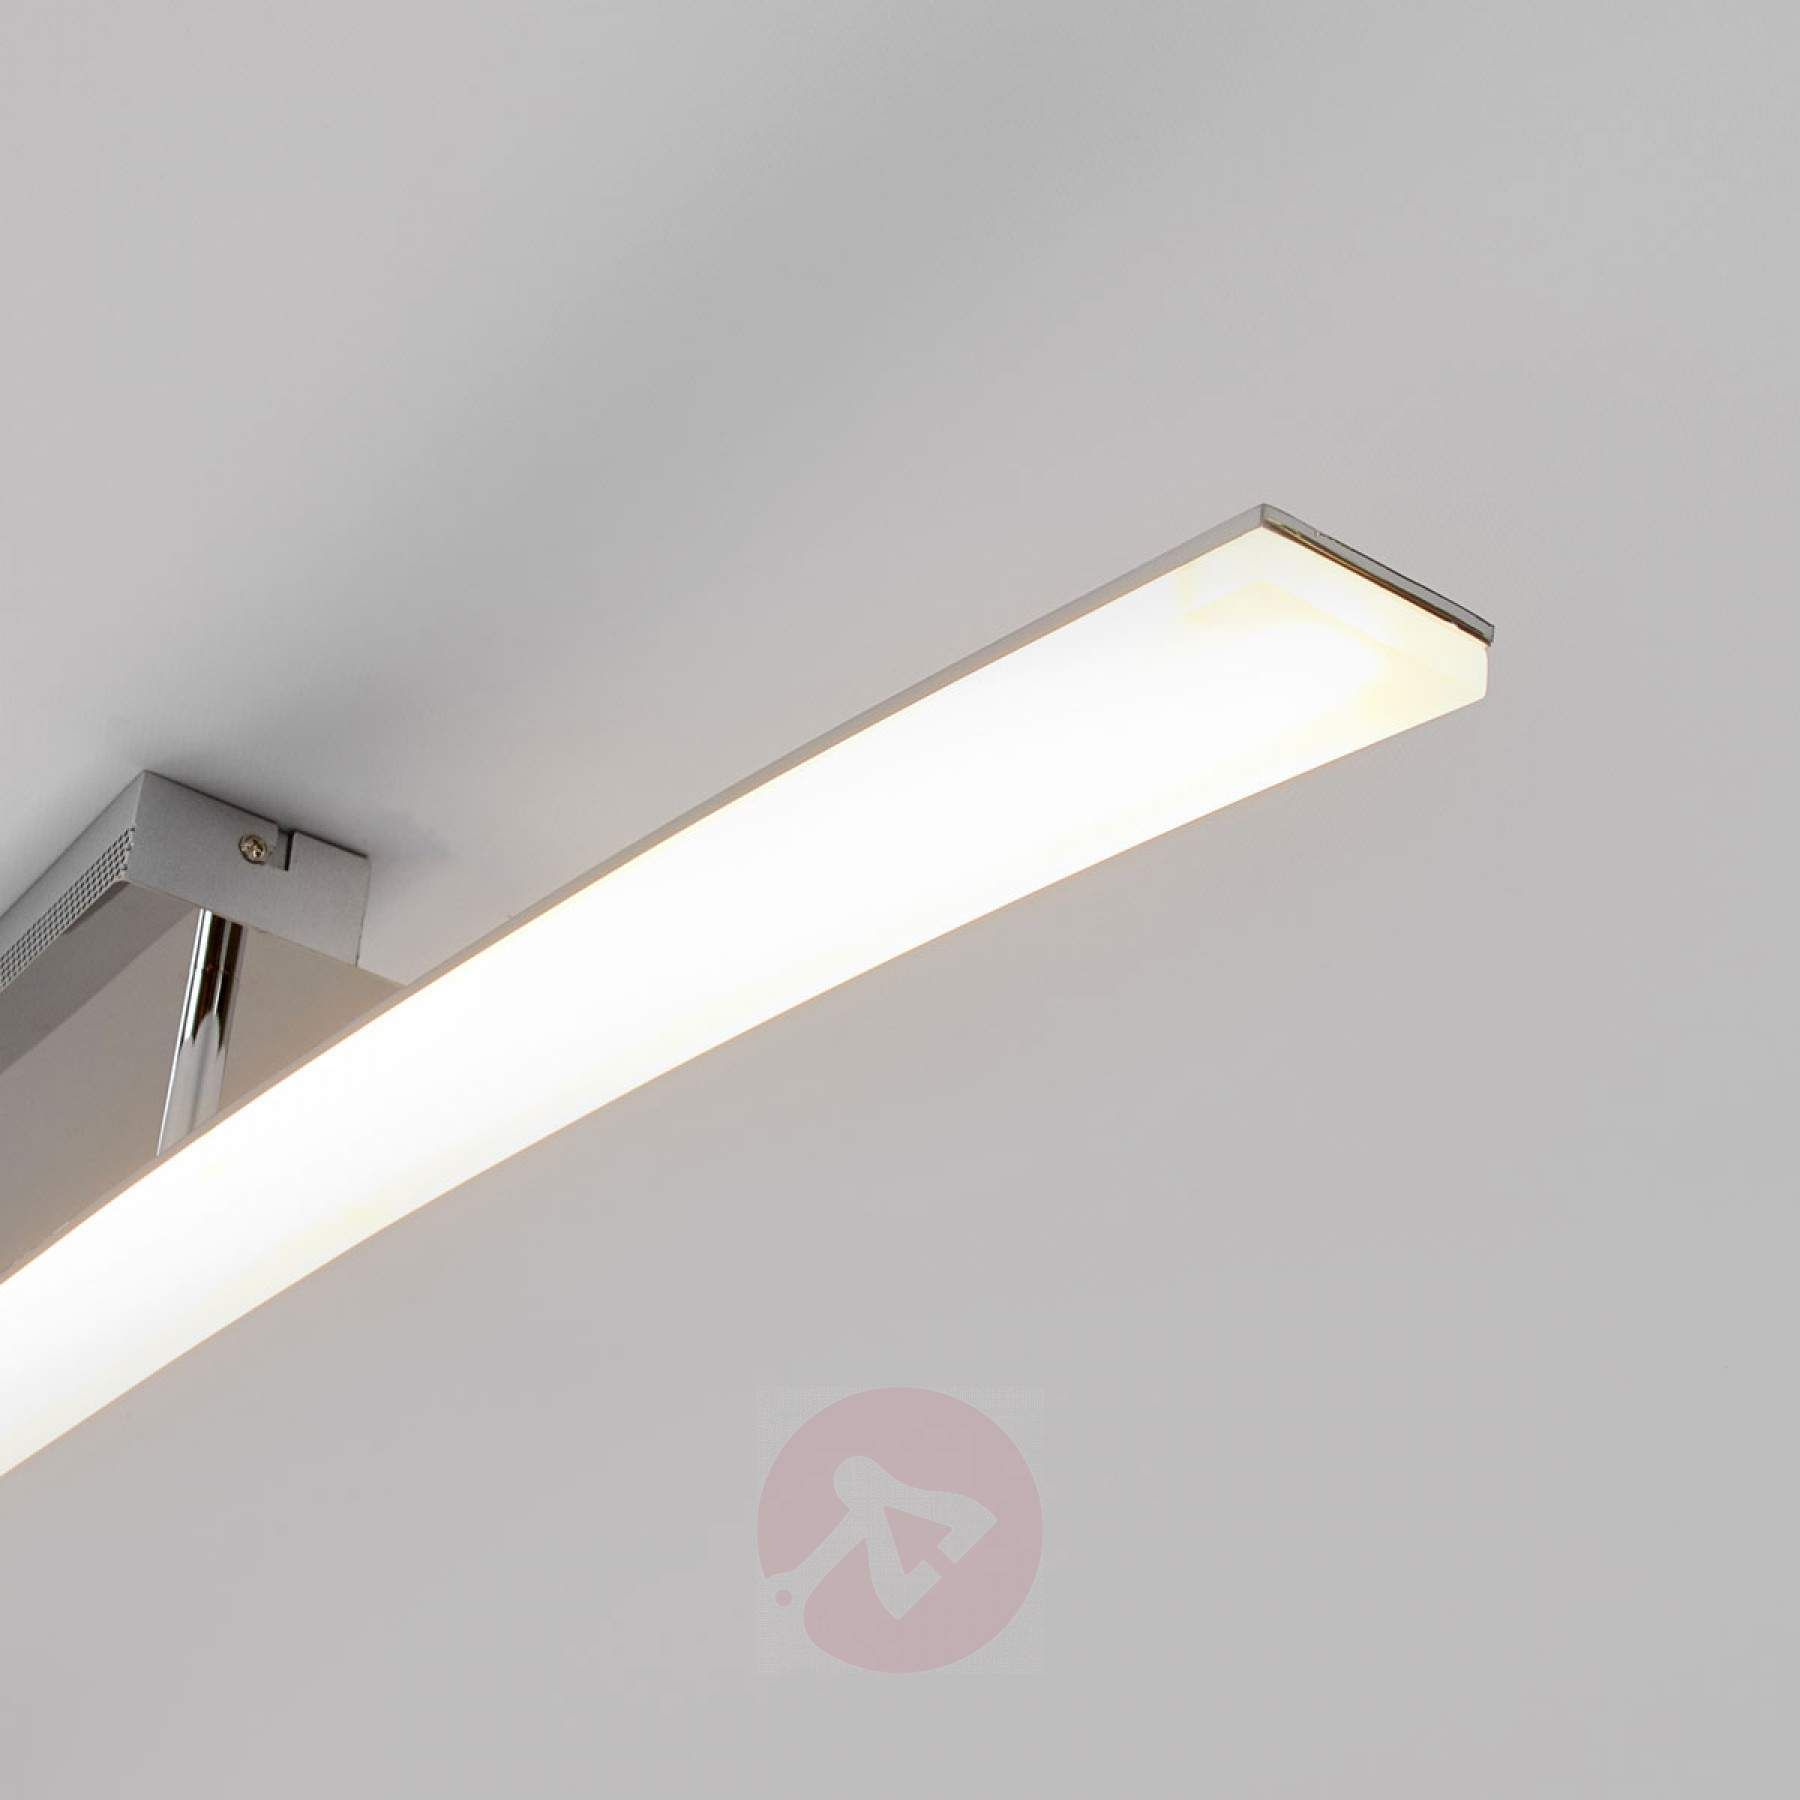 Curved Led Ceiling Light Lorian 9984009 01 Ceiling Lights